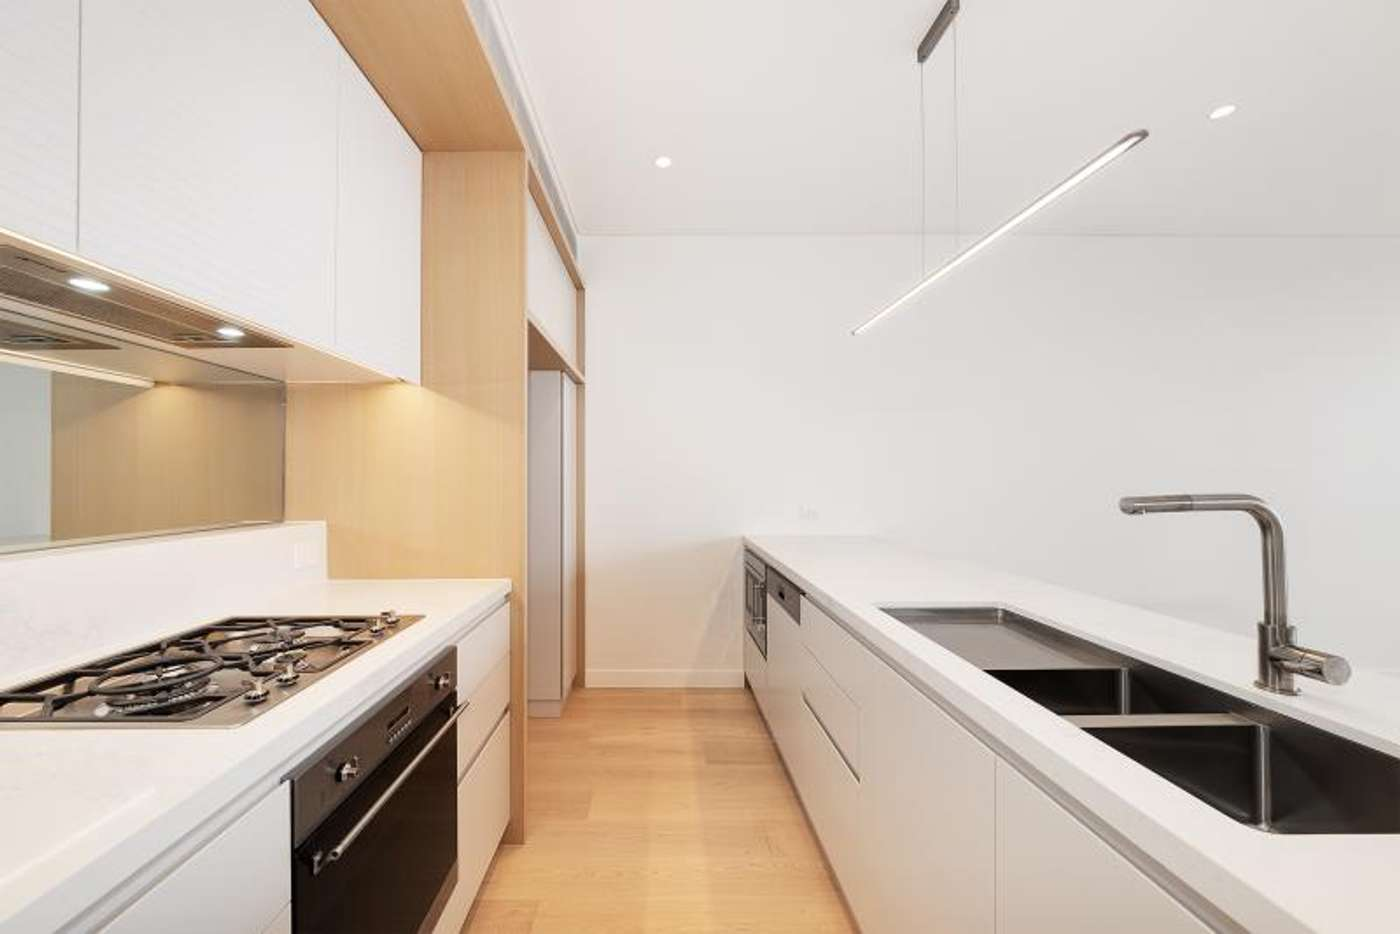 Main view of Homely apartment listing, 608/3 Young Street, Randwick NSW 2031